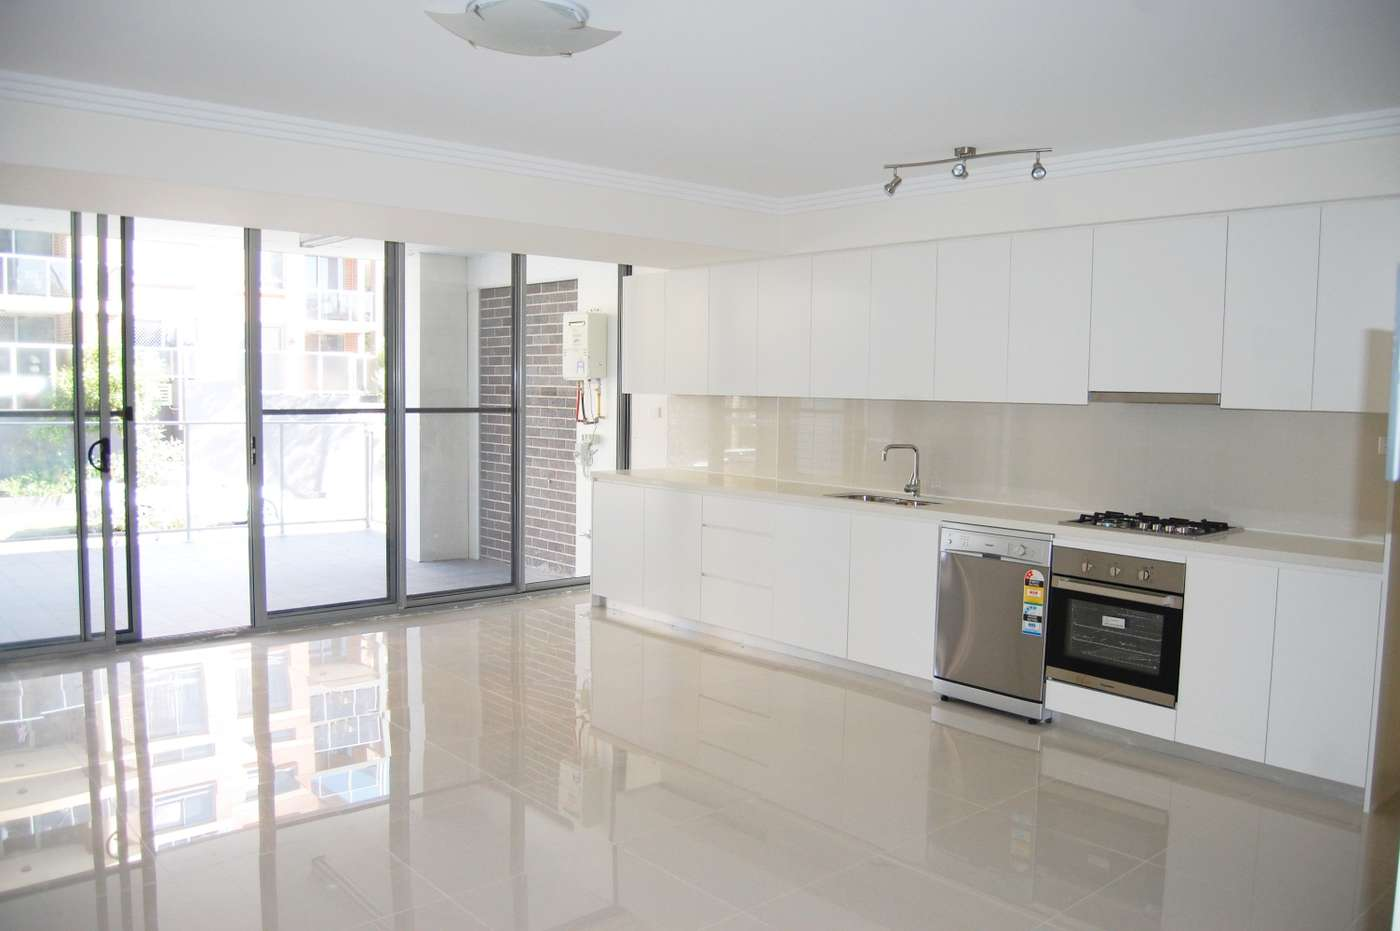 Main view of Homely apartment listing, 95/15-23 Lusty Street, Wolli Creek, NSW 2205